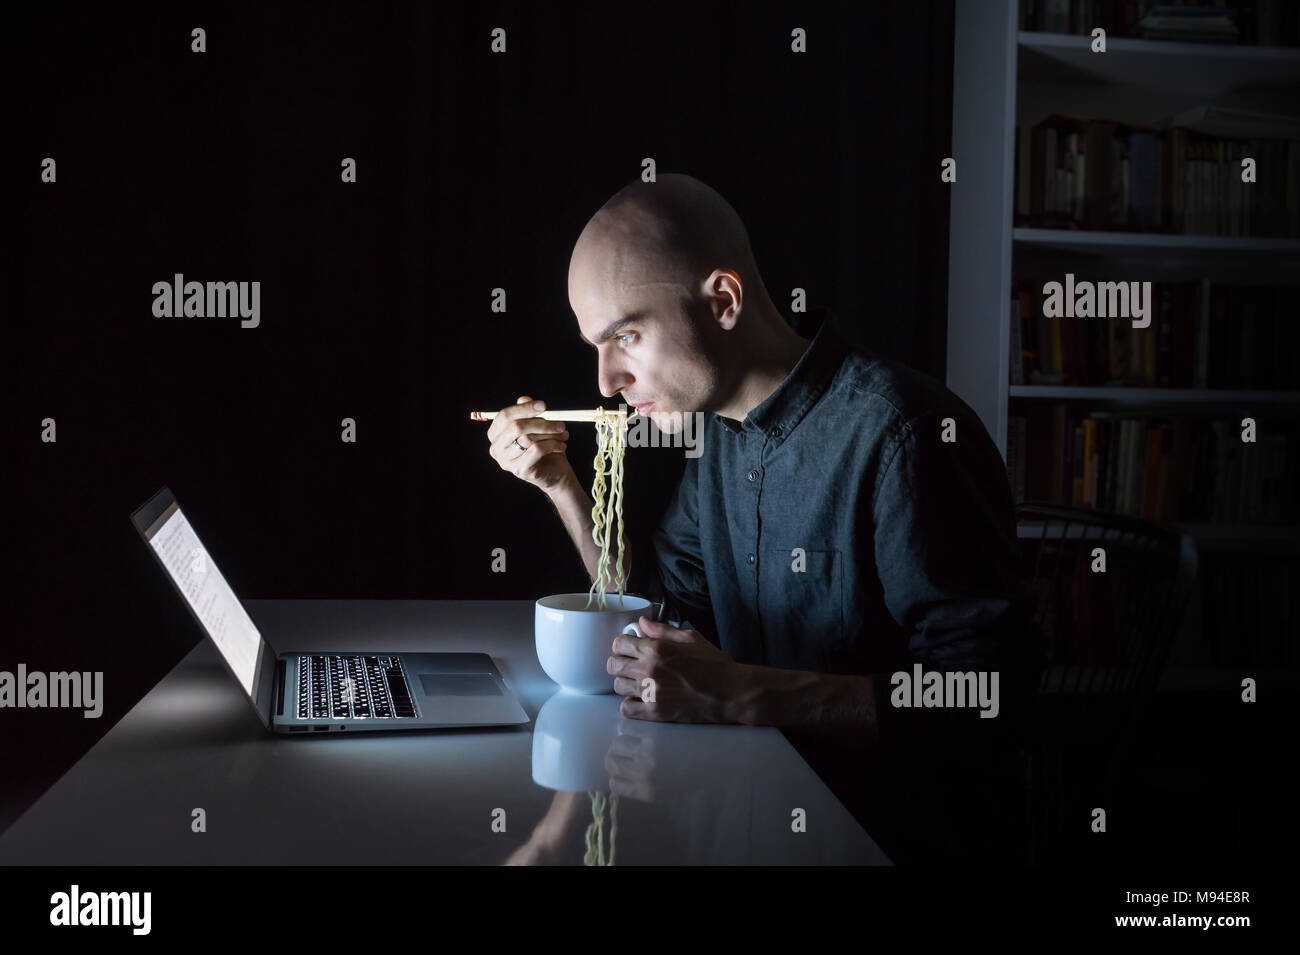 Young male at laptop computer eats instant ramen noodles with chopsticks late in the evening. Man working or studying online overtime at night has fas - Stock Image